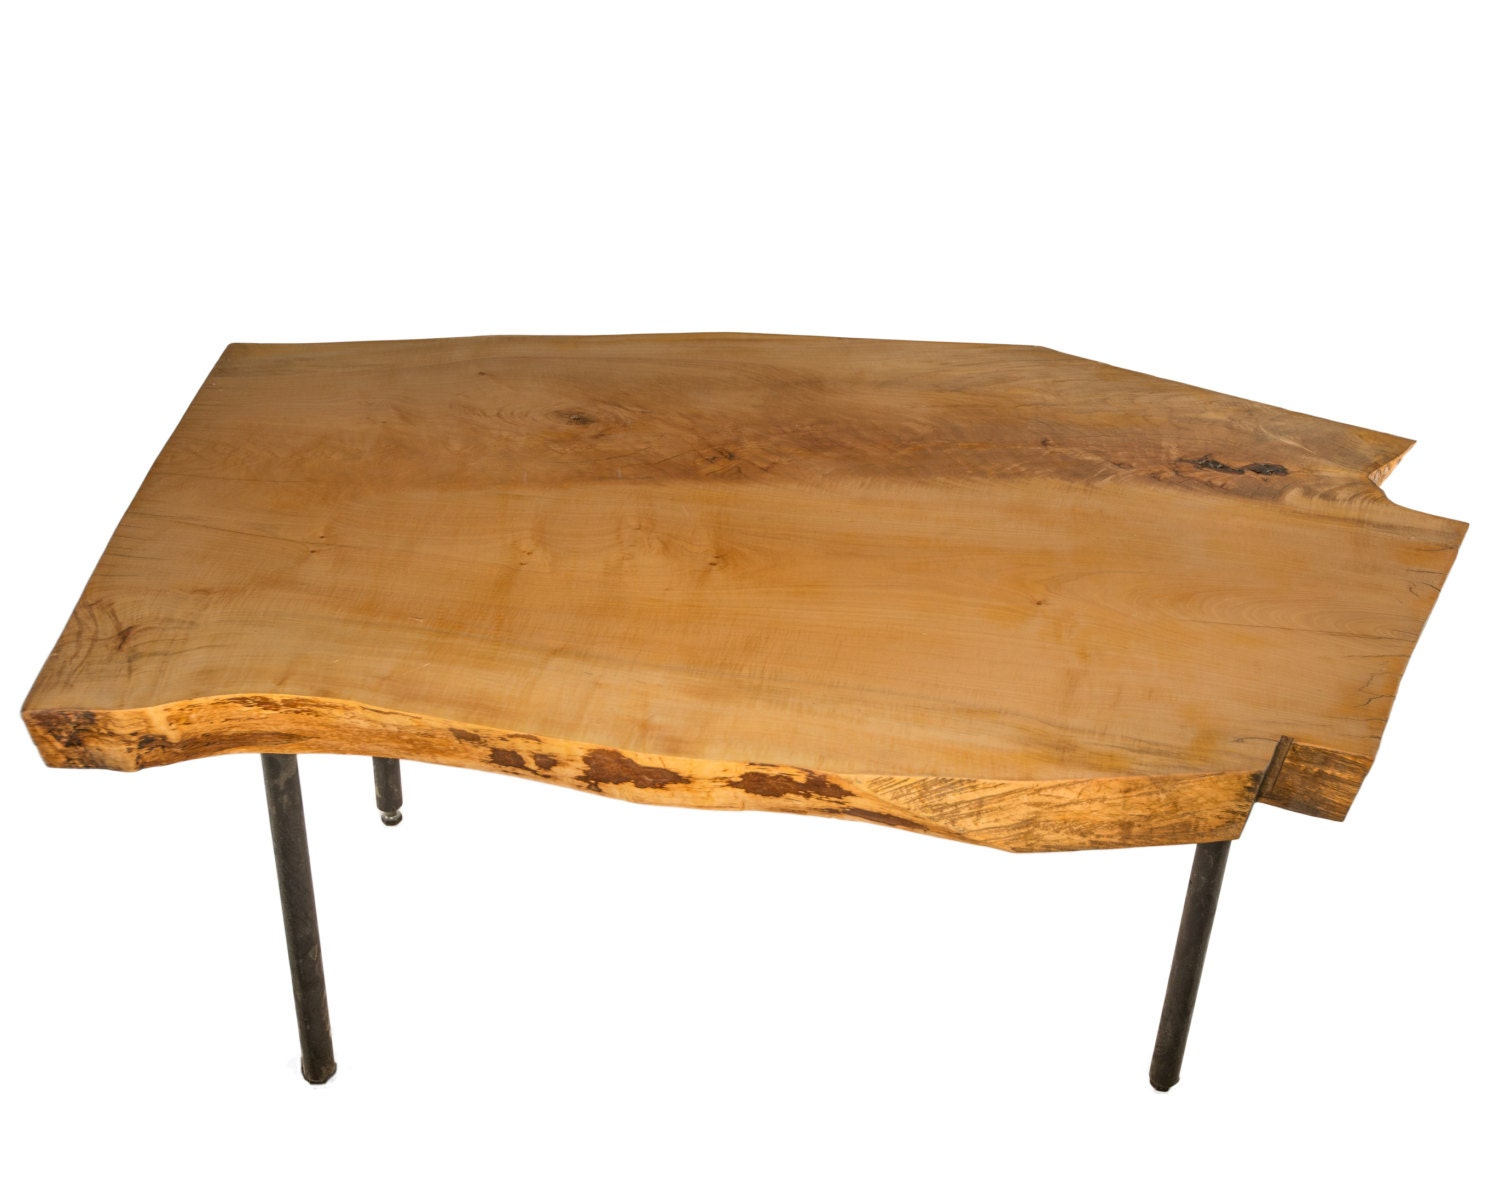 Harding Ii Live Edge Maple Coffee Table